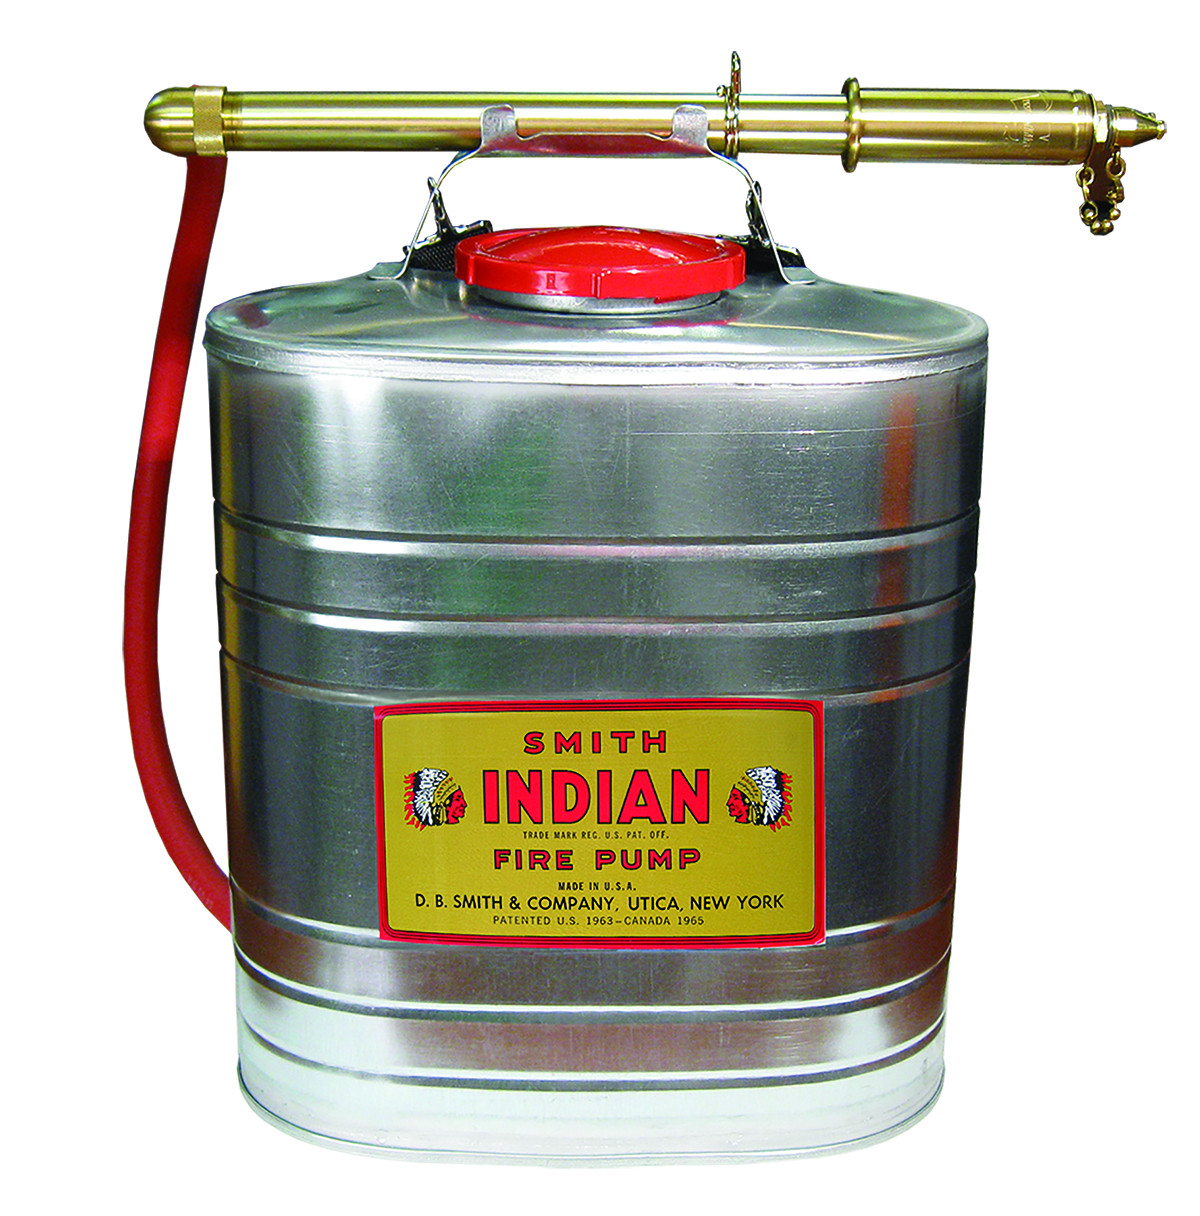 Indian™ 90S 5-Gallon Stainless Steel Tank with FP200 Fire Pump, Model 179015-17